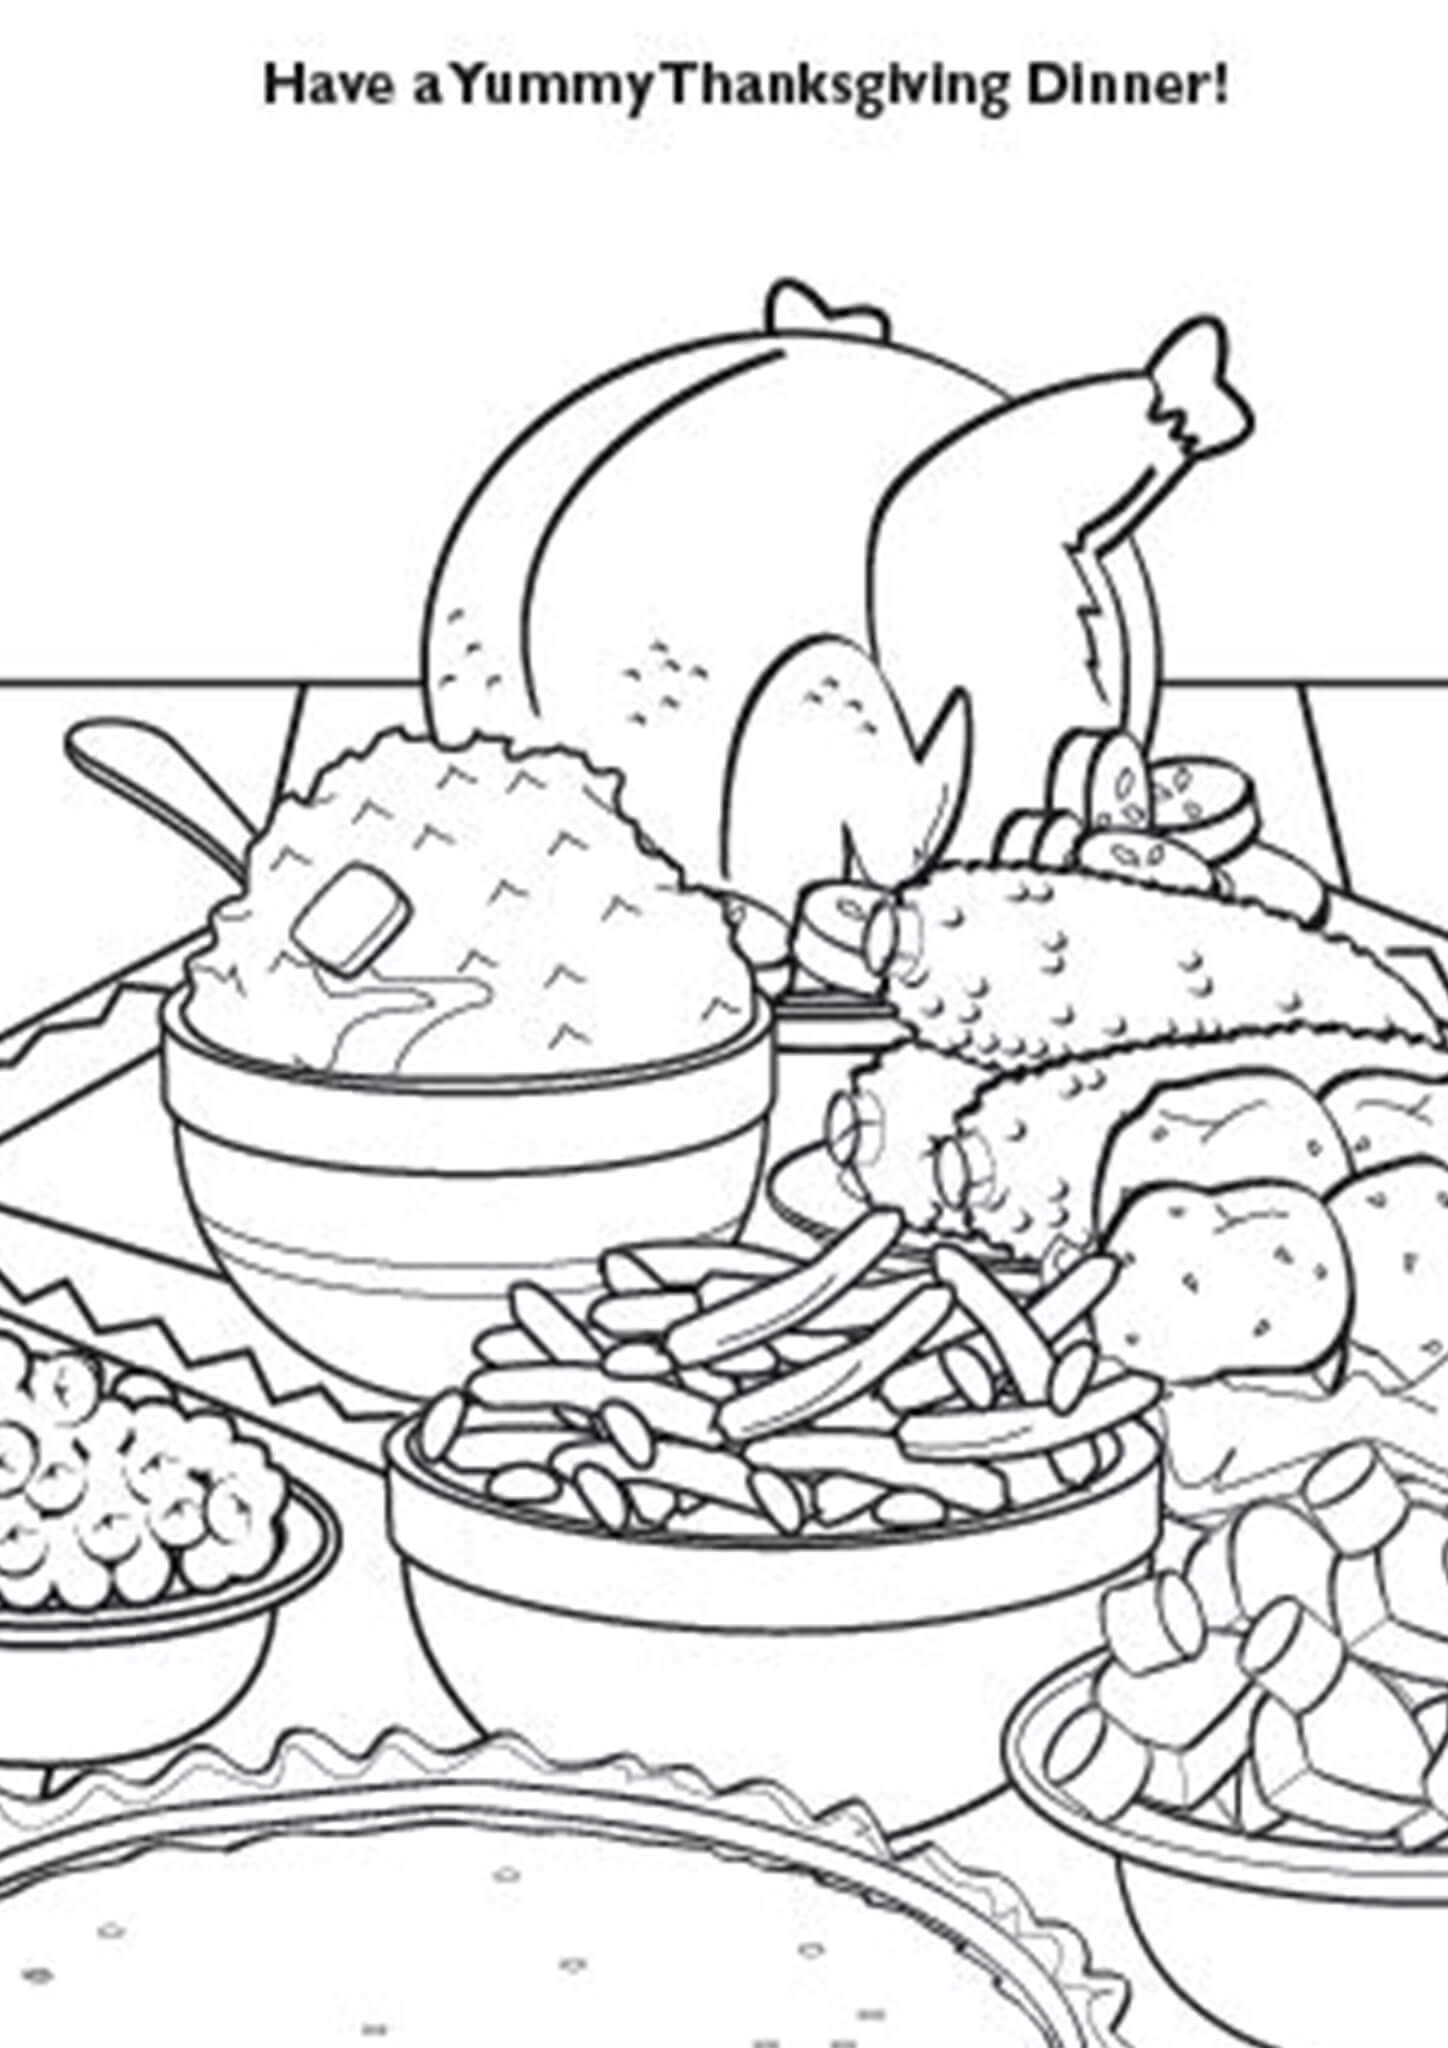 Free Printable Thanksgiving Coloring Pages Thanksgiving Coloring Pages Coloring Pages Valentines Day Coloring Page [ 2048 x 1448 Pixel ]